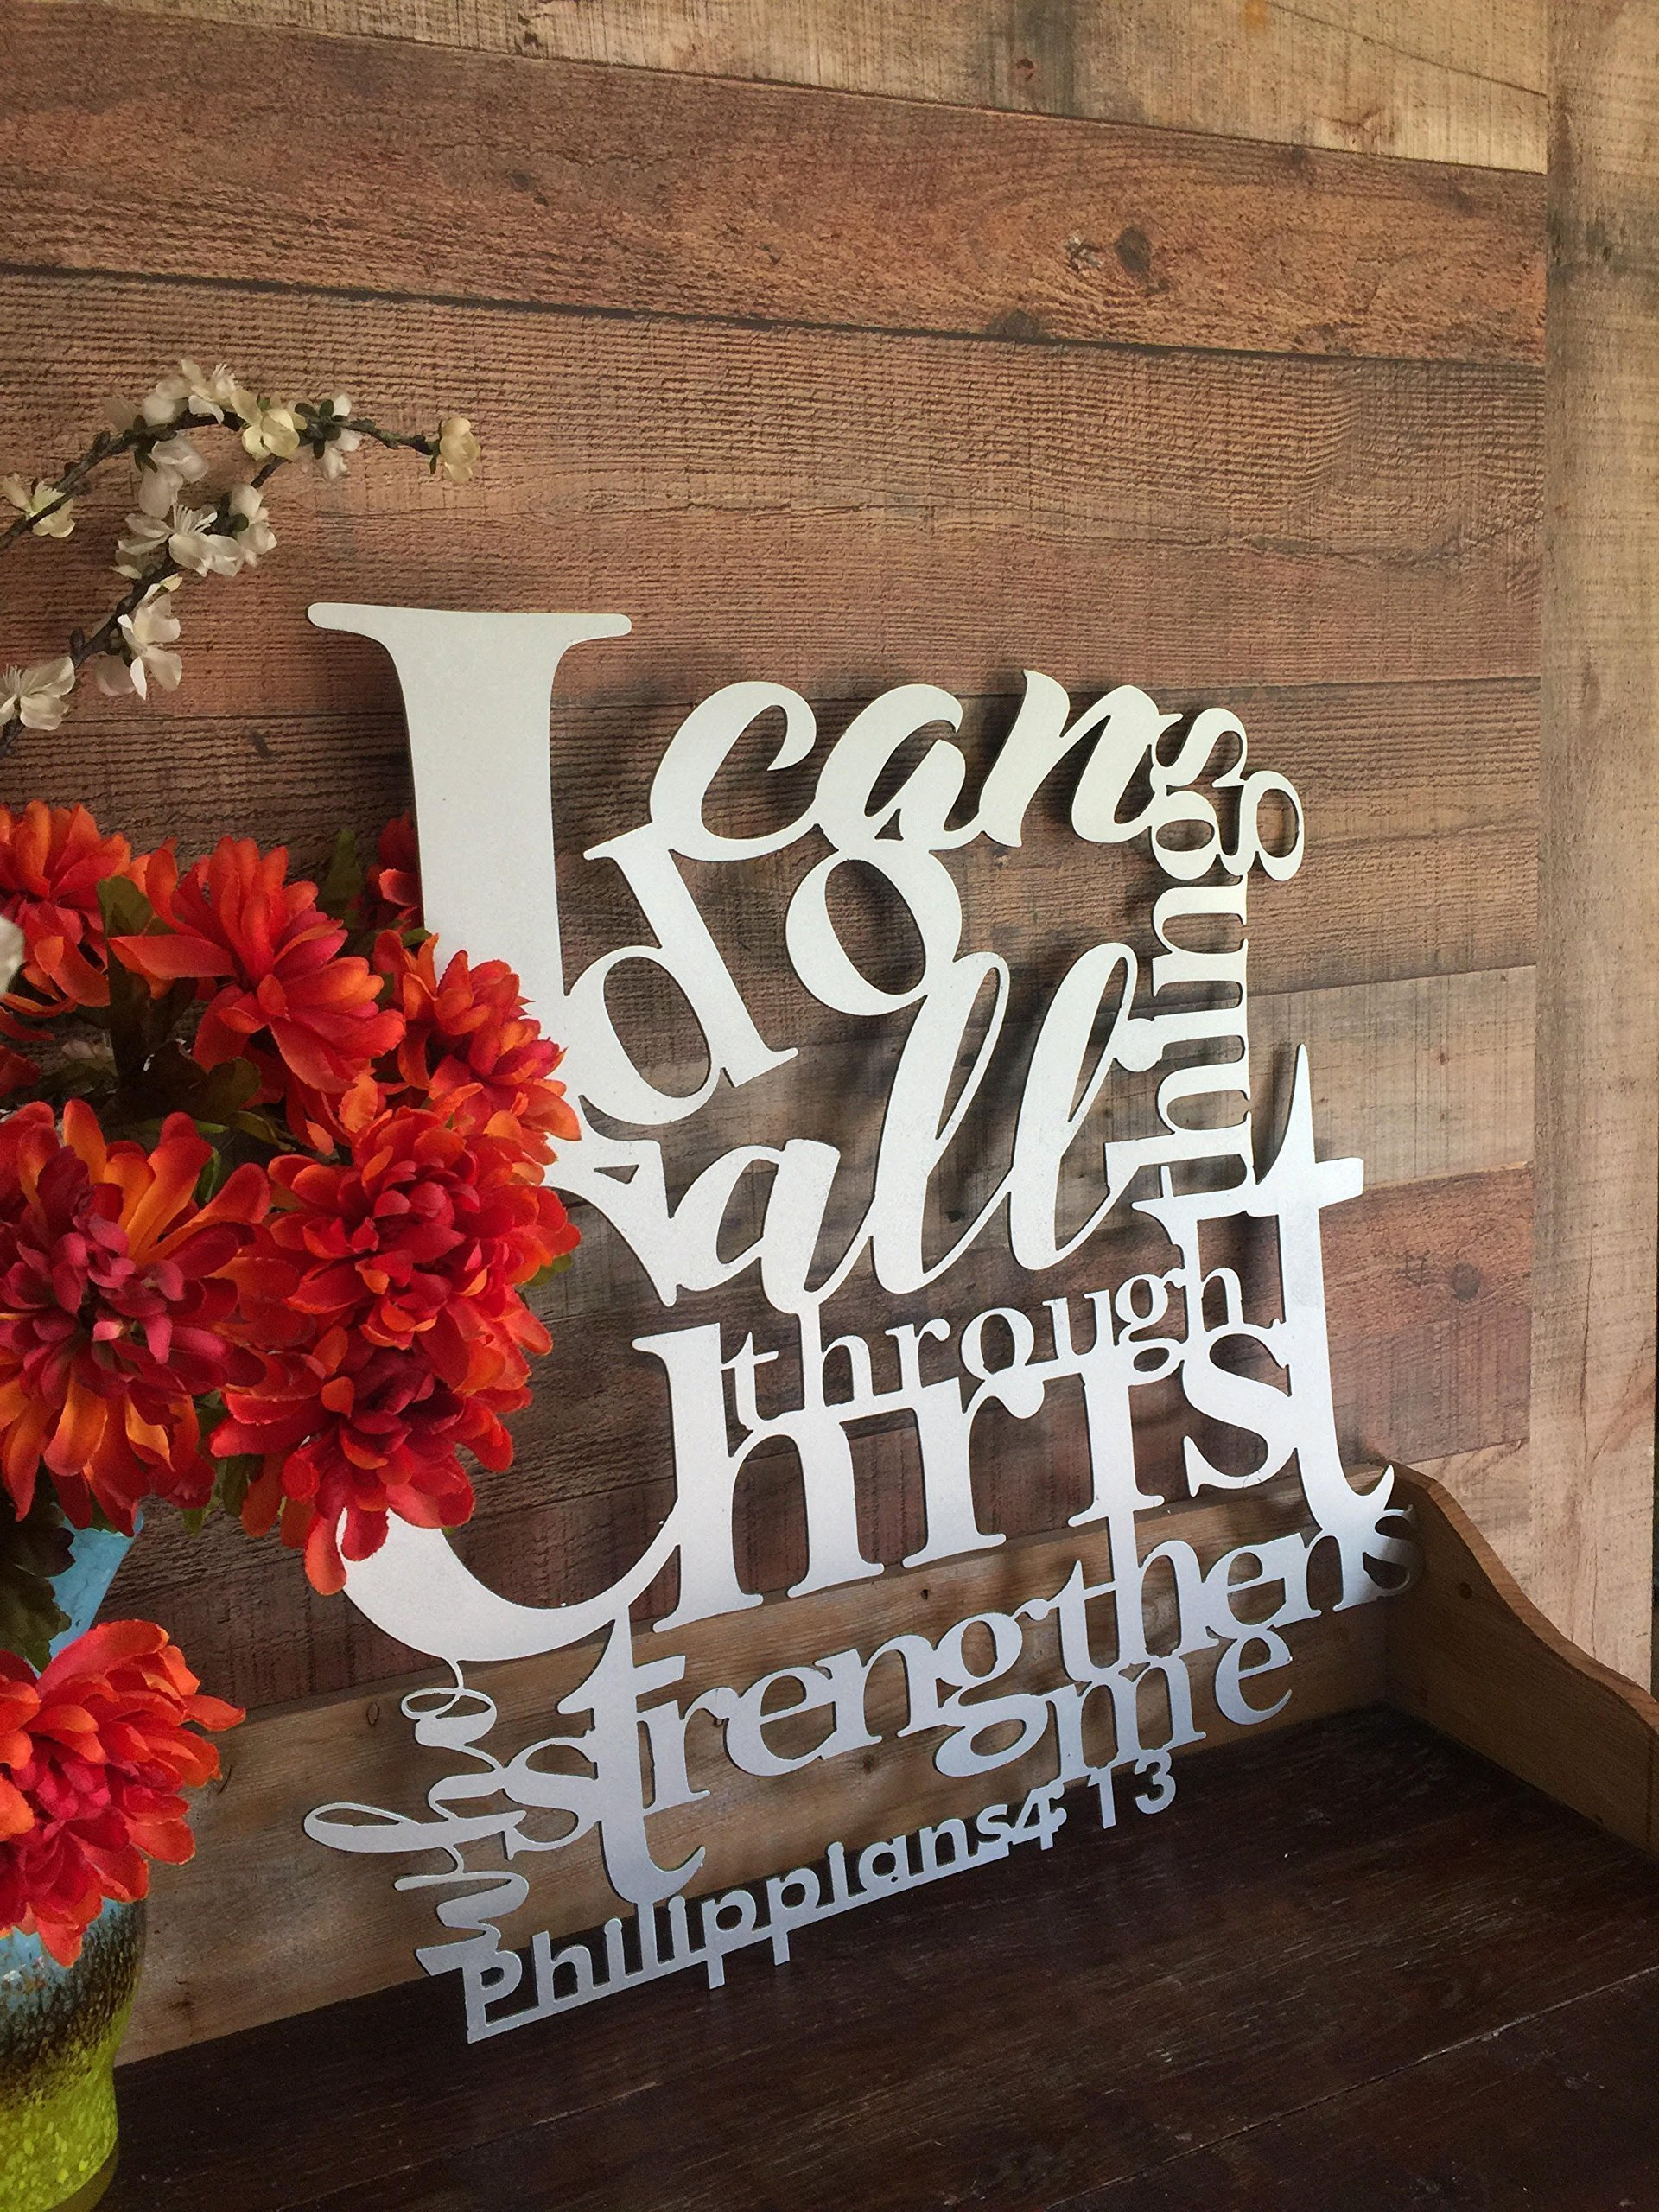 I Can Do All Things Through Christ Who Strengthens Me - Philippians 4:13 Bible Verse Metal Wall Art